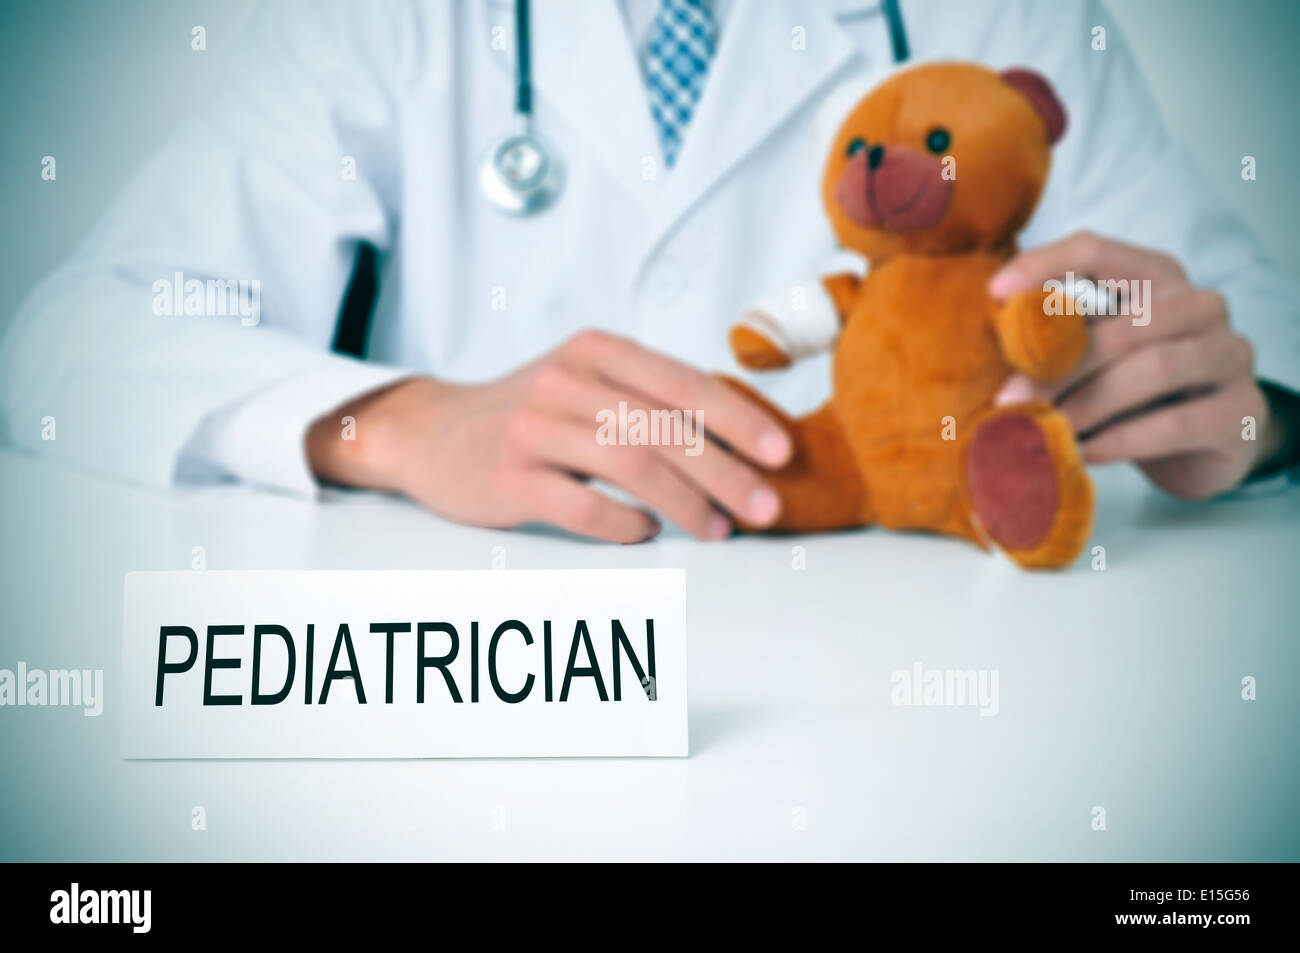 a doctor sitting in a desk with a injured teddy bear and a nameplate with the word pediatrician written in it - Stock Image